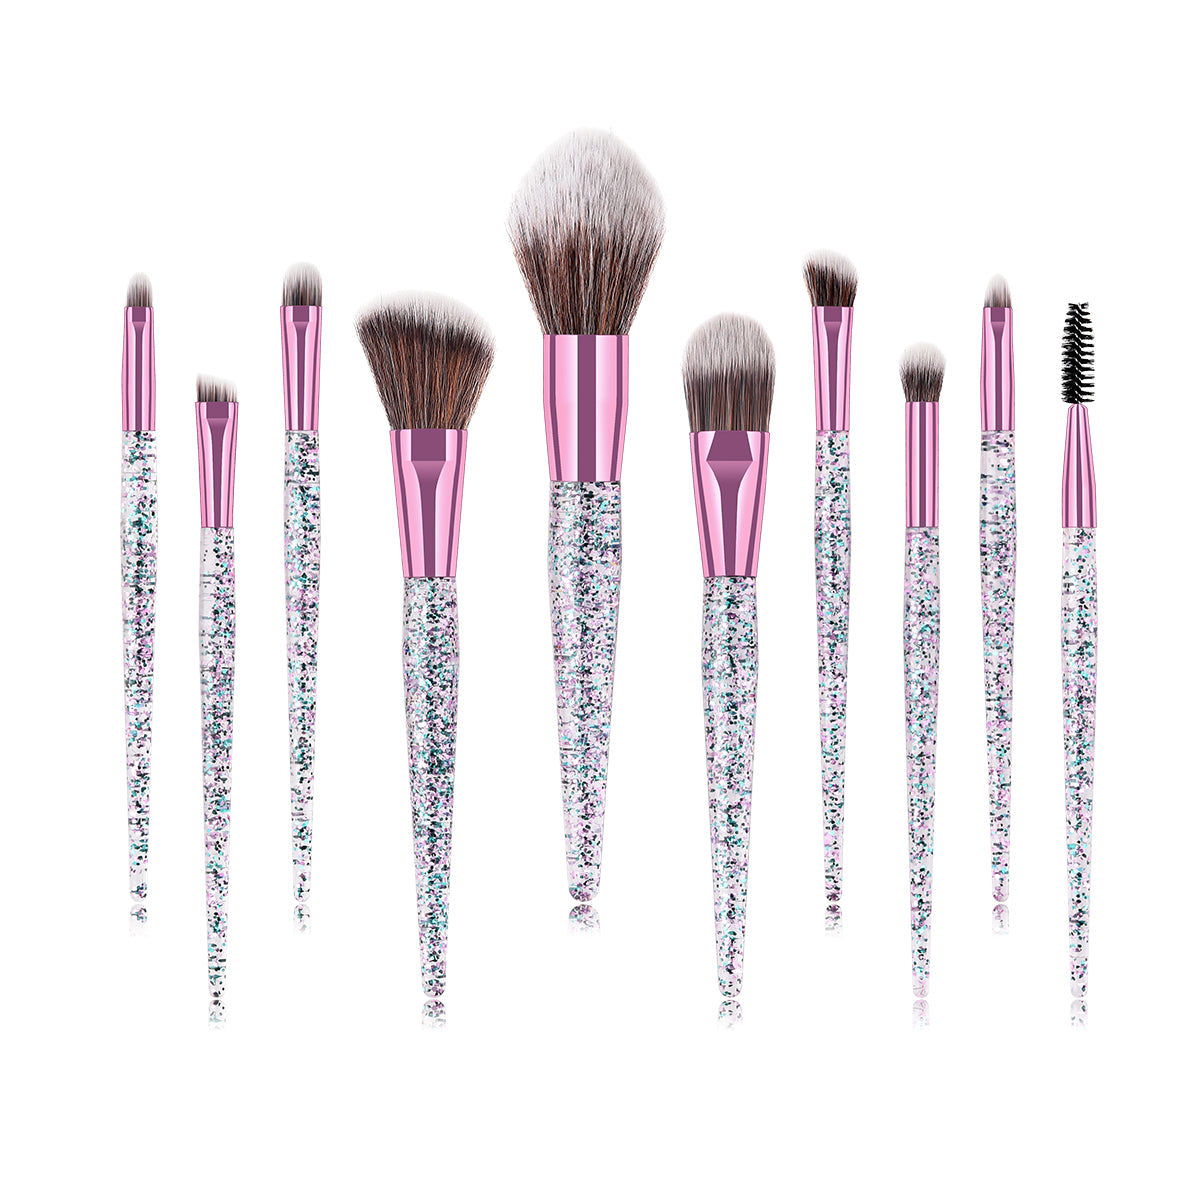 10-Piece: All that Glitter Makeup Brush Set